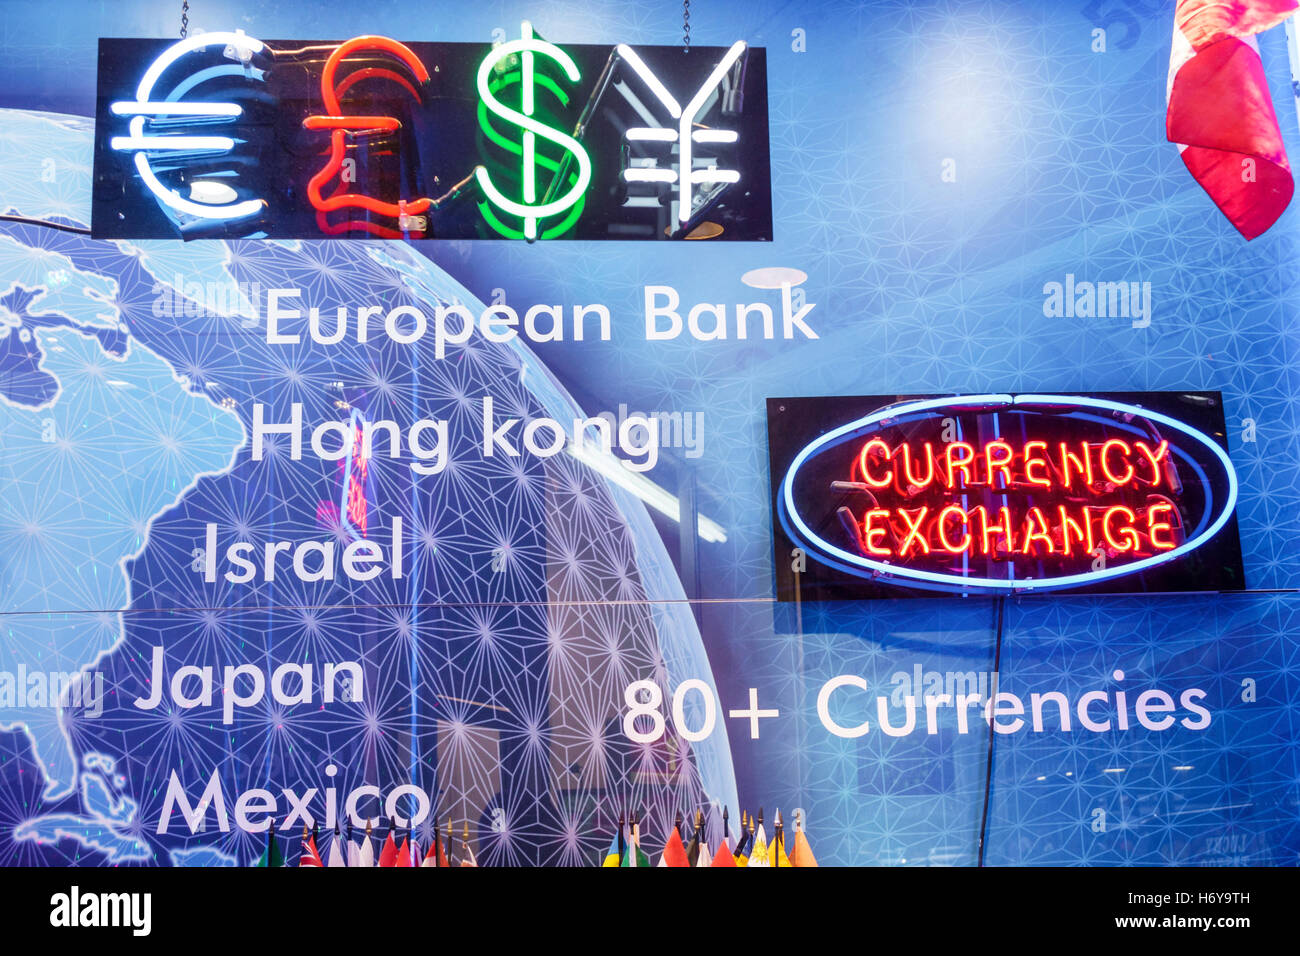 Florida miami beach currency exchange monetary symbols neon sign florida miami beach currency exchange monetary symbols neon sign biocorpaavc Images